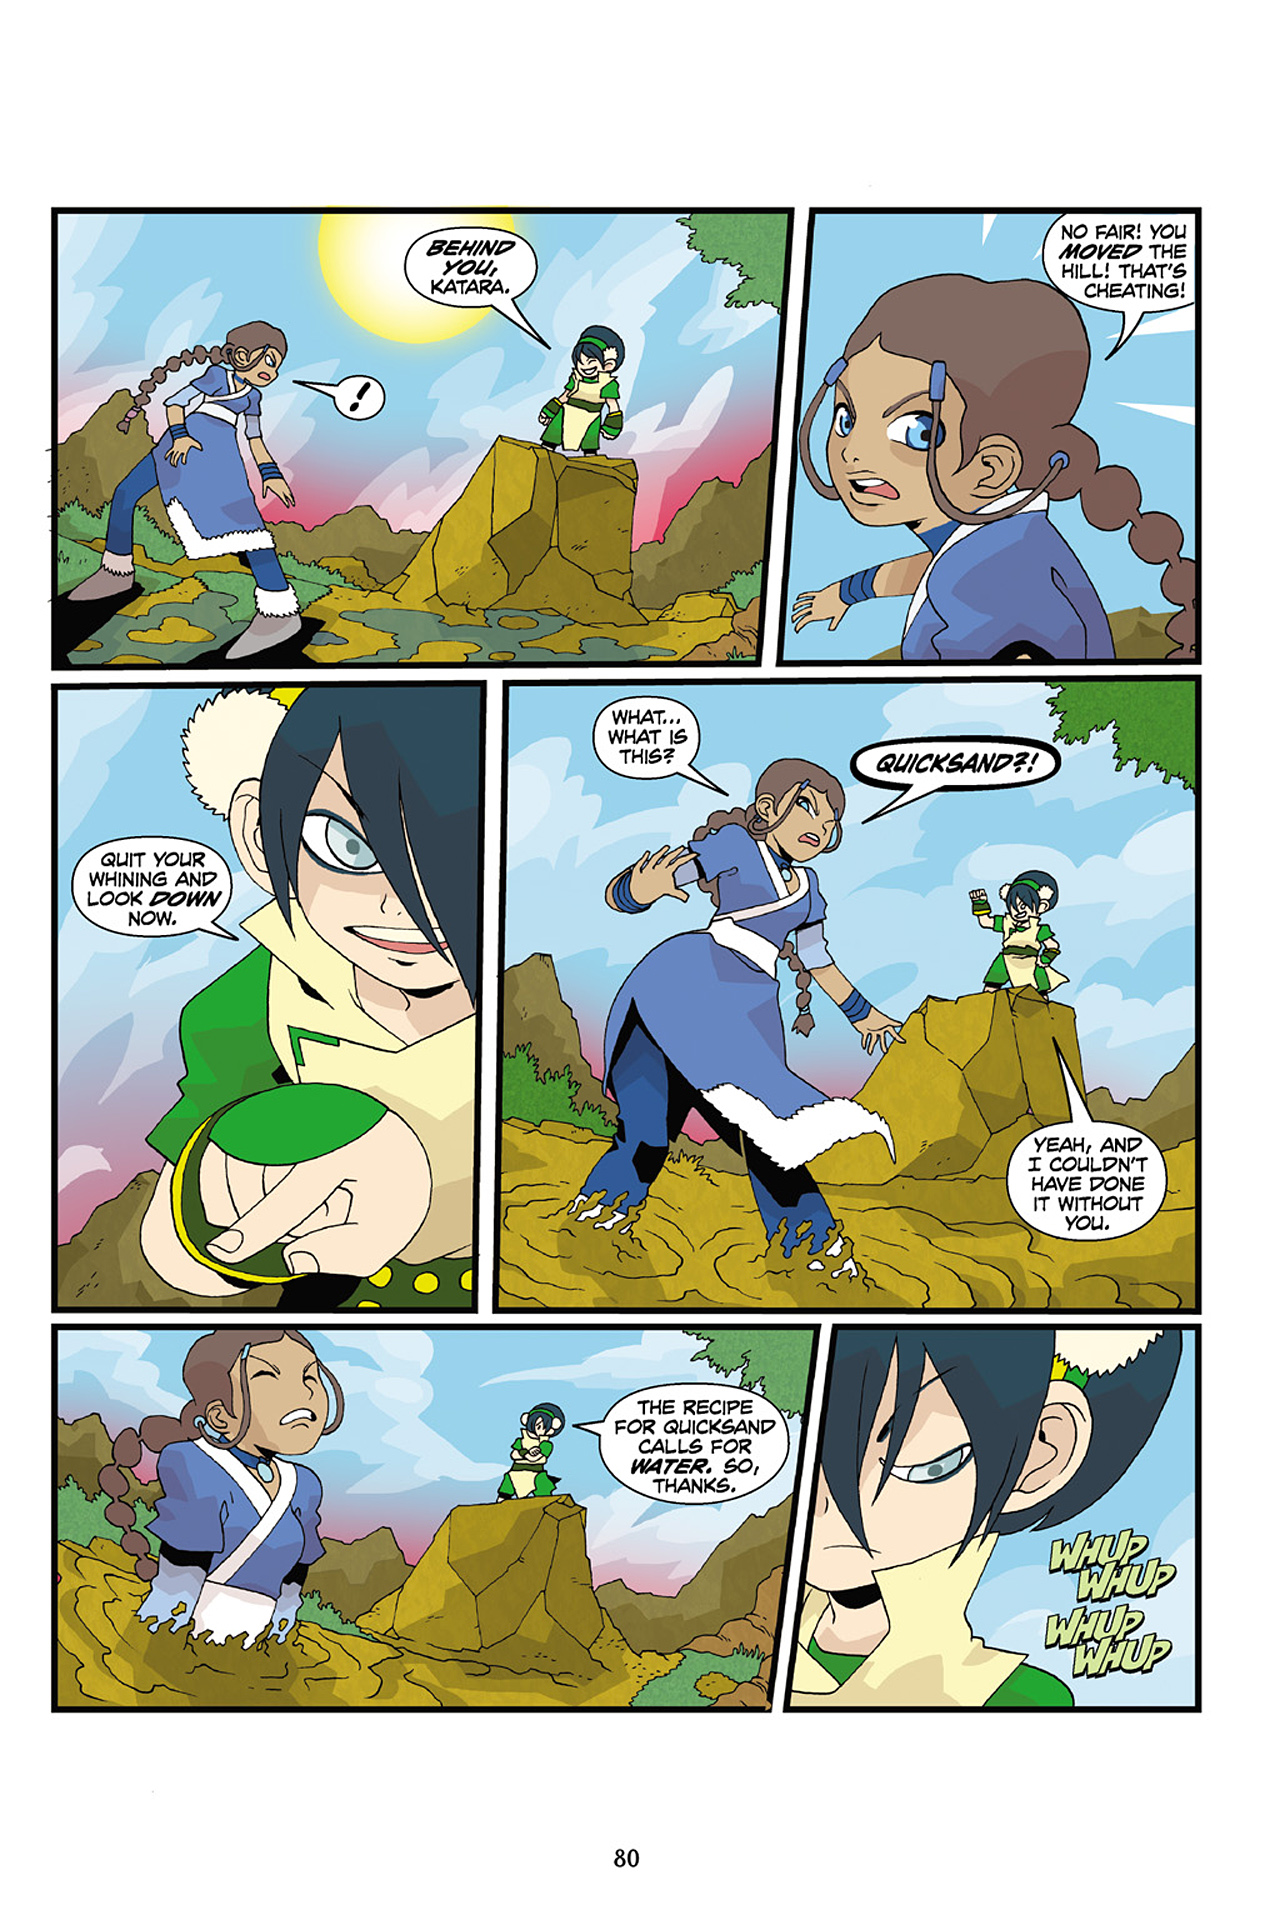 Nickelodeon Avatar: The Last Airbender - The Lost Adventures chap full pic 81